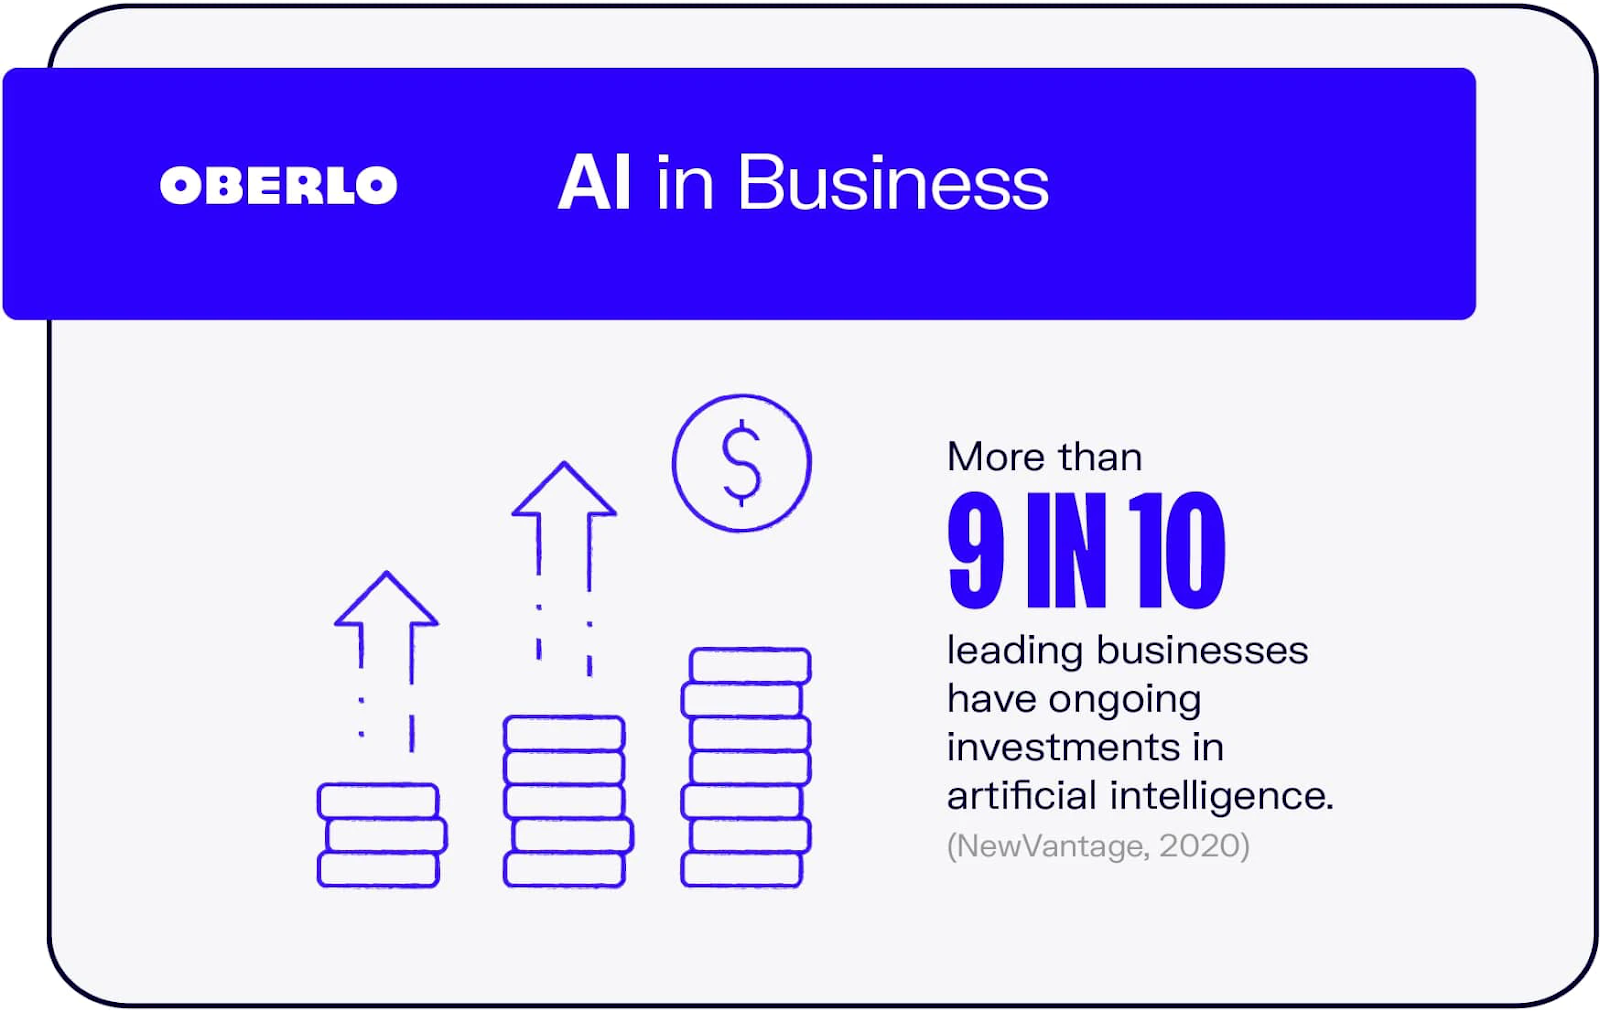 An infographic showing the ratio of businesses investmenting in AI.